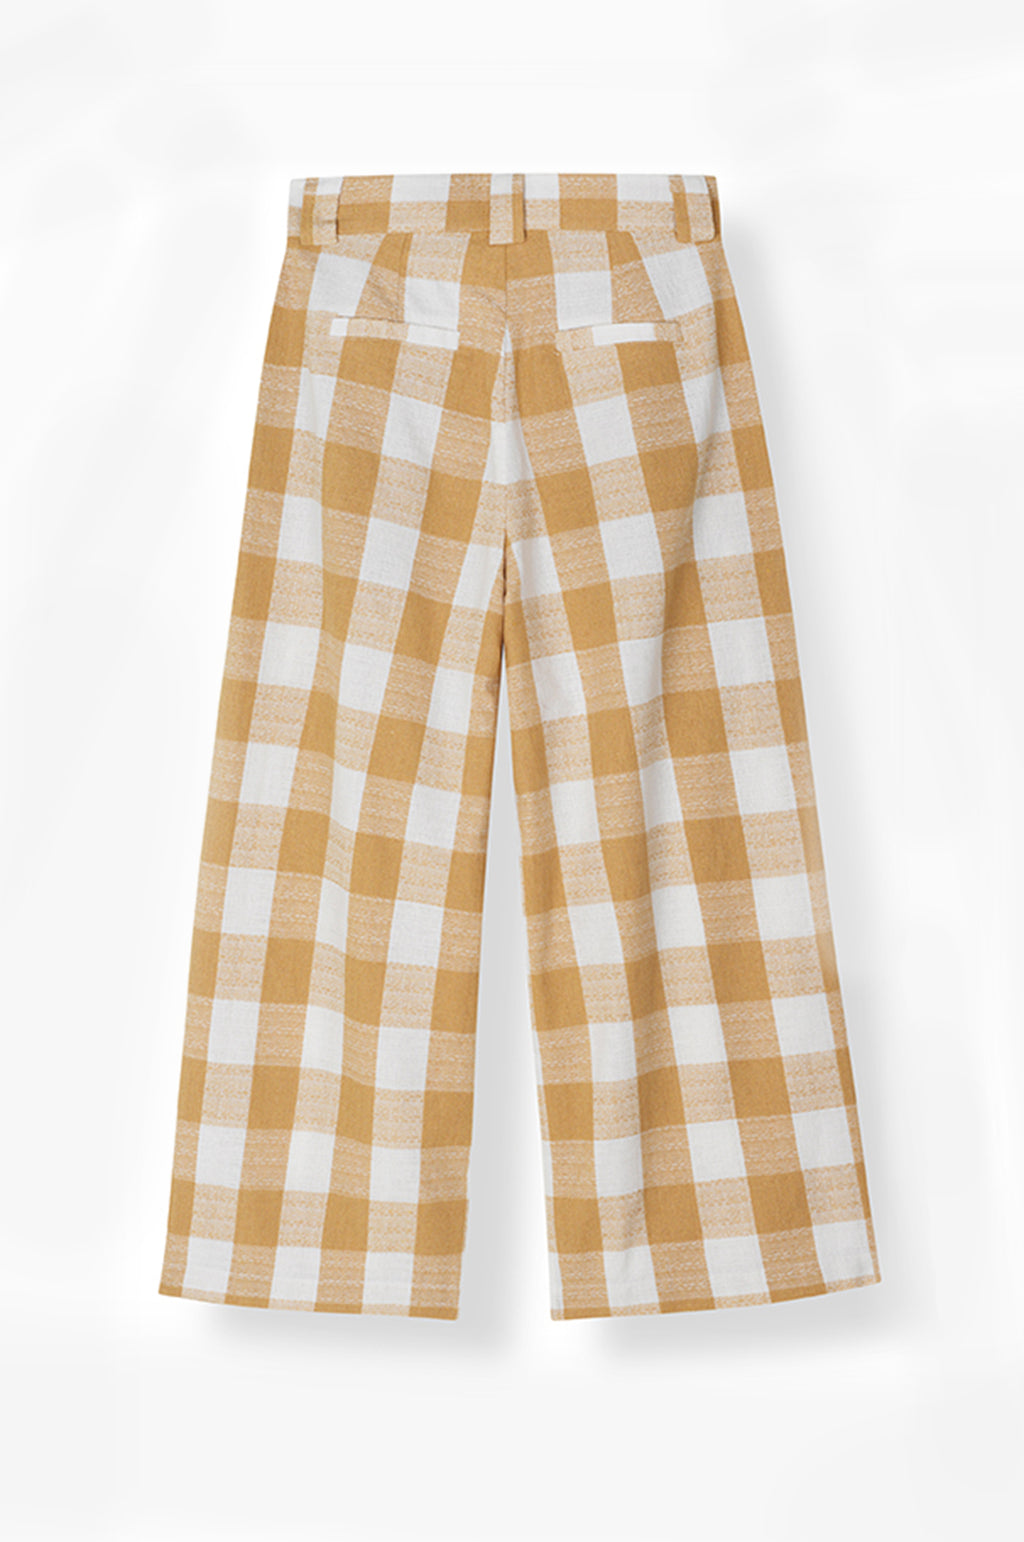 Jacklyn Pant in Camel Checks